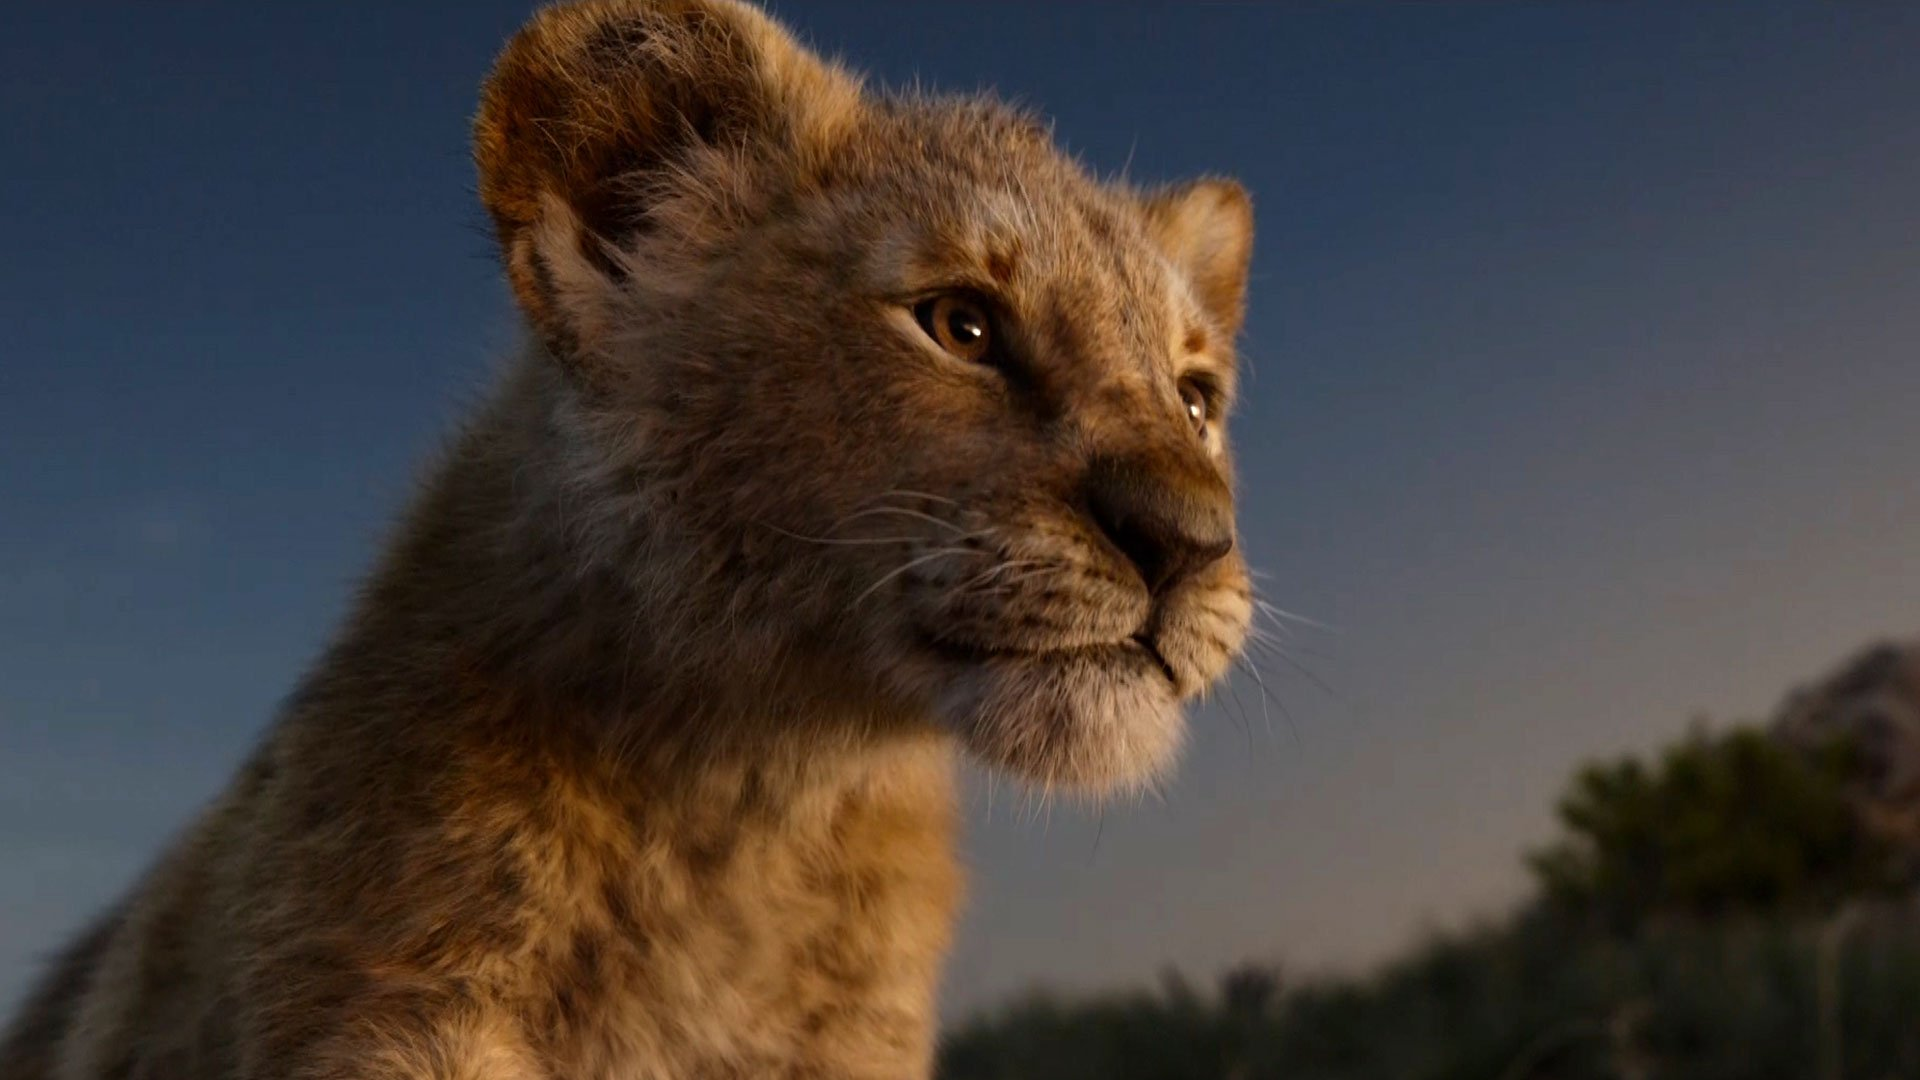 The Lion King - Simba Lion King 2019 , HD Wallpaper & Backgrounds